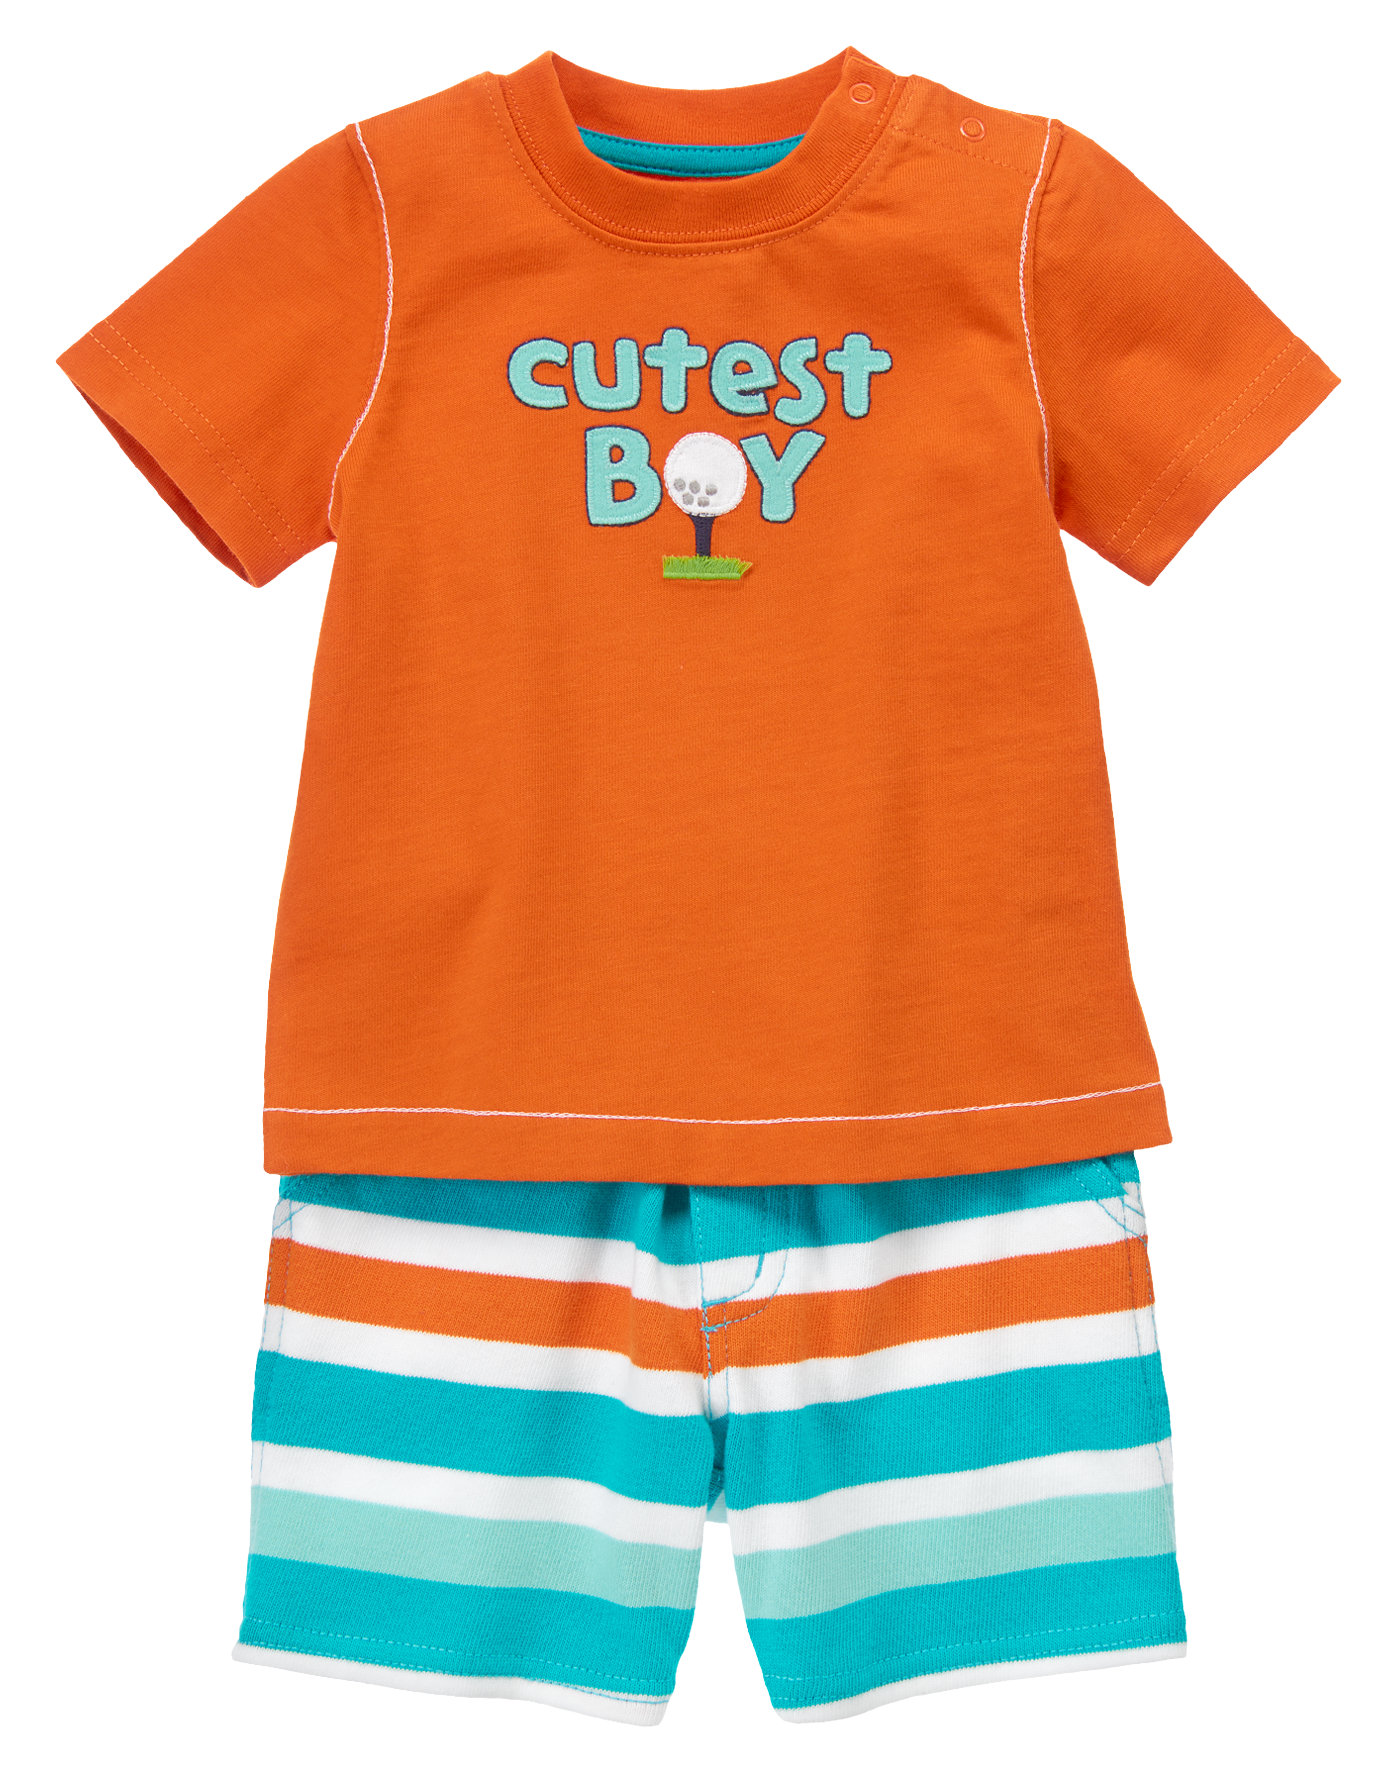 Cutest Boy Two-Piece Set